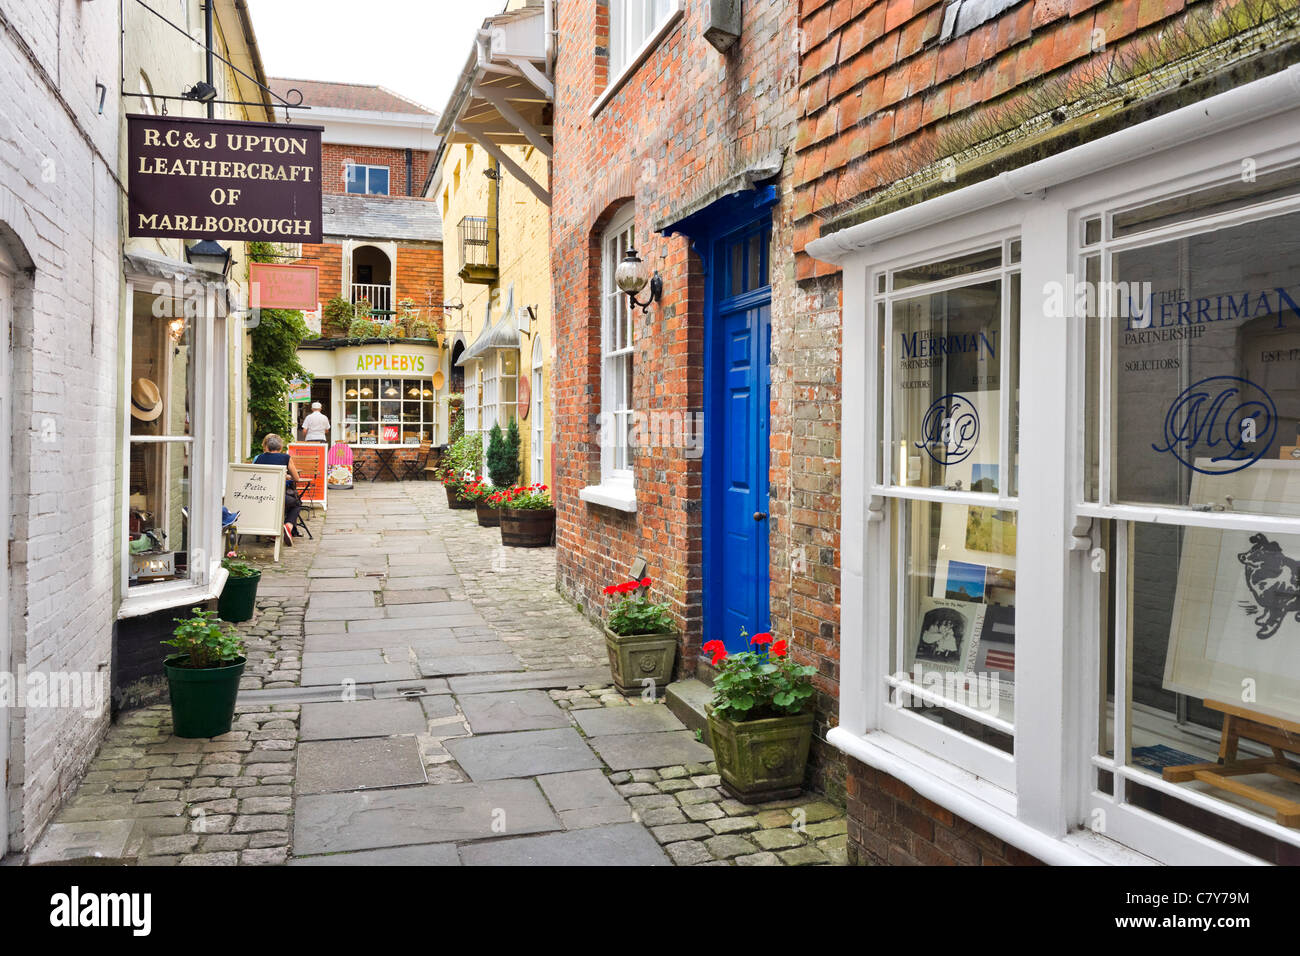 Shops and cafe on a side street off the High Street in the market town of Marlborough, Wiltshire, England, UK Stock Photo